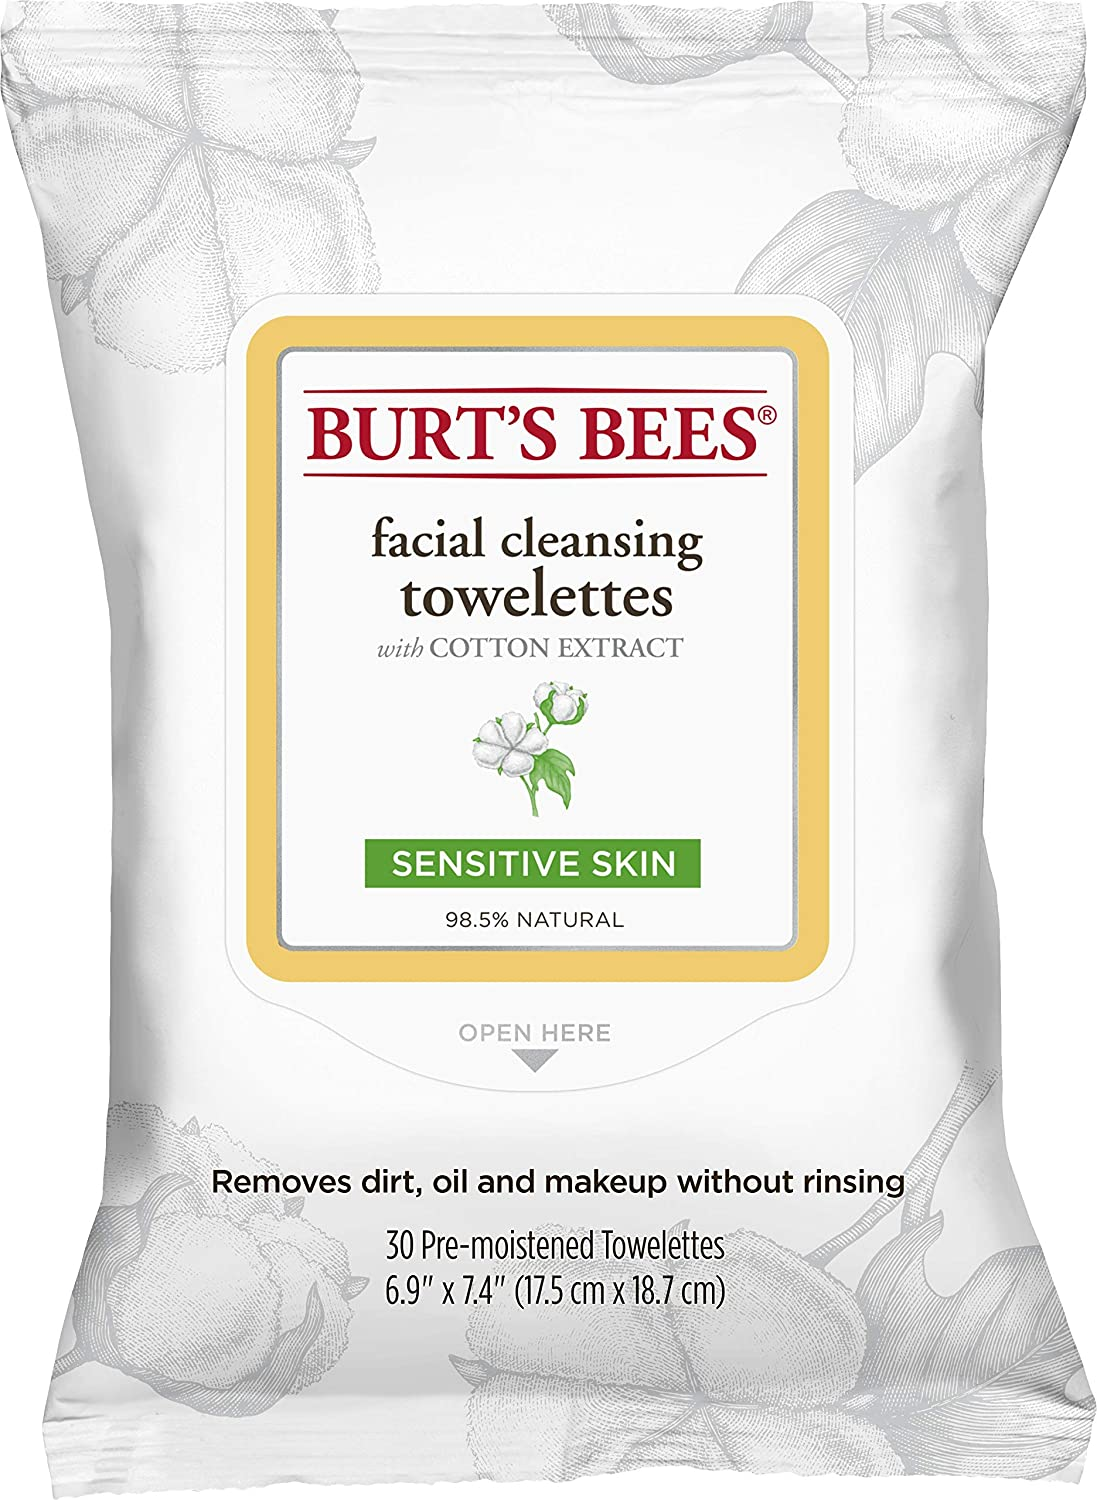 Burt's Bees Sensitive Facial Cleansing Towelettes with Cotton Extract for Sensitive Skin- 30 Count